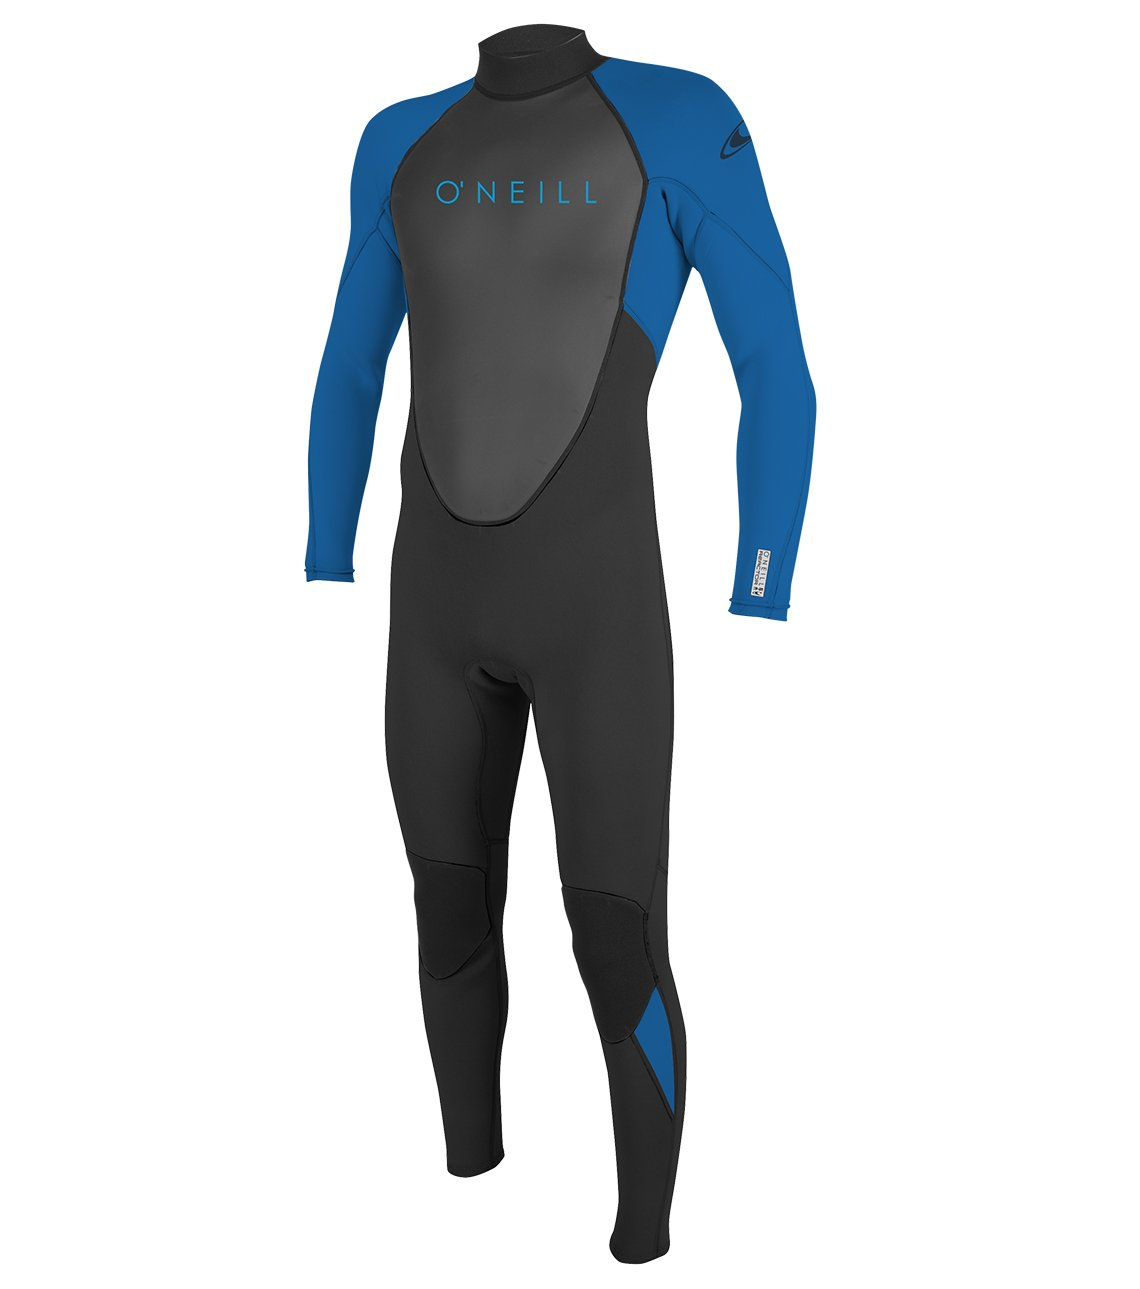 O'Neill Youth Reactor-2 3/2mm Back Zip Full Wetsuit, Black/Ocean, 4 by O'Neill Wetsuits